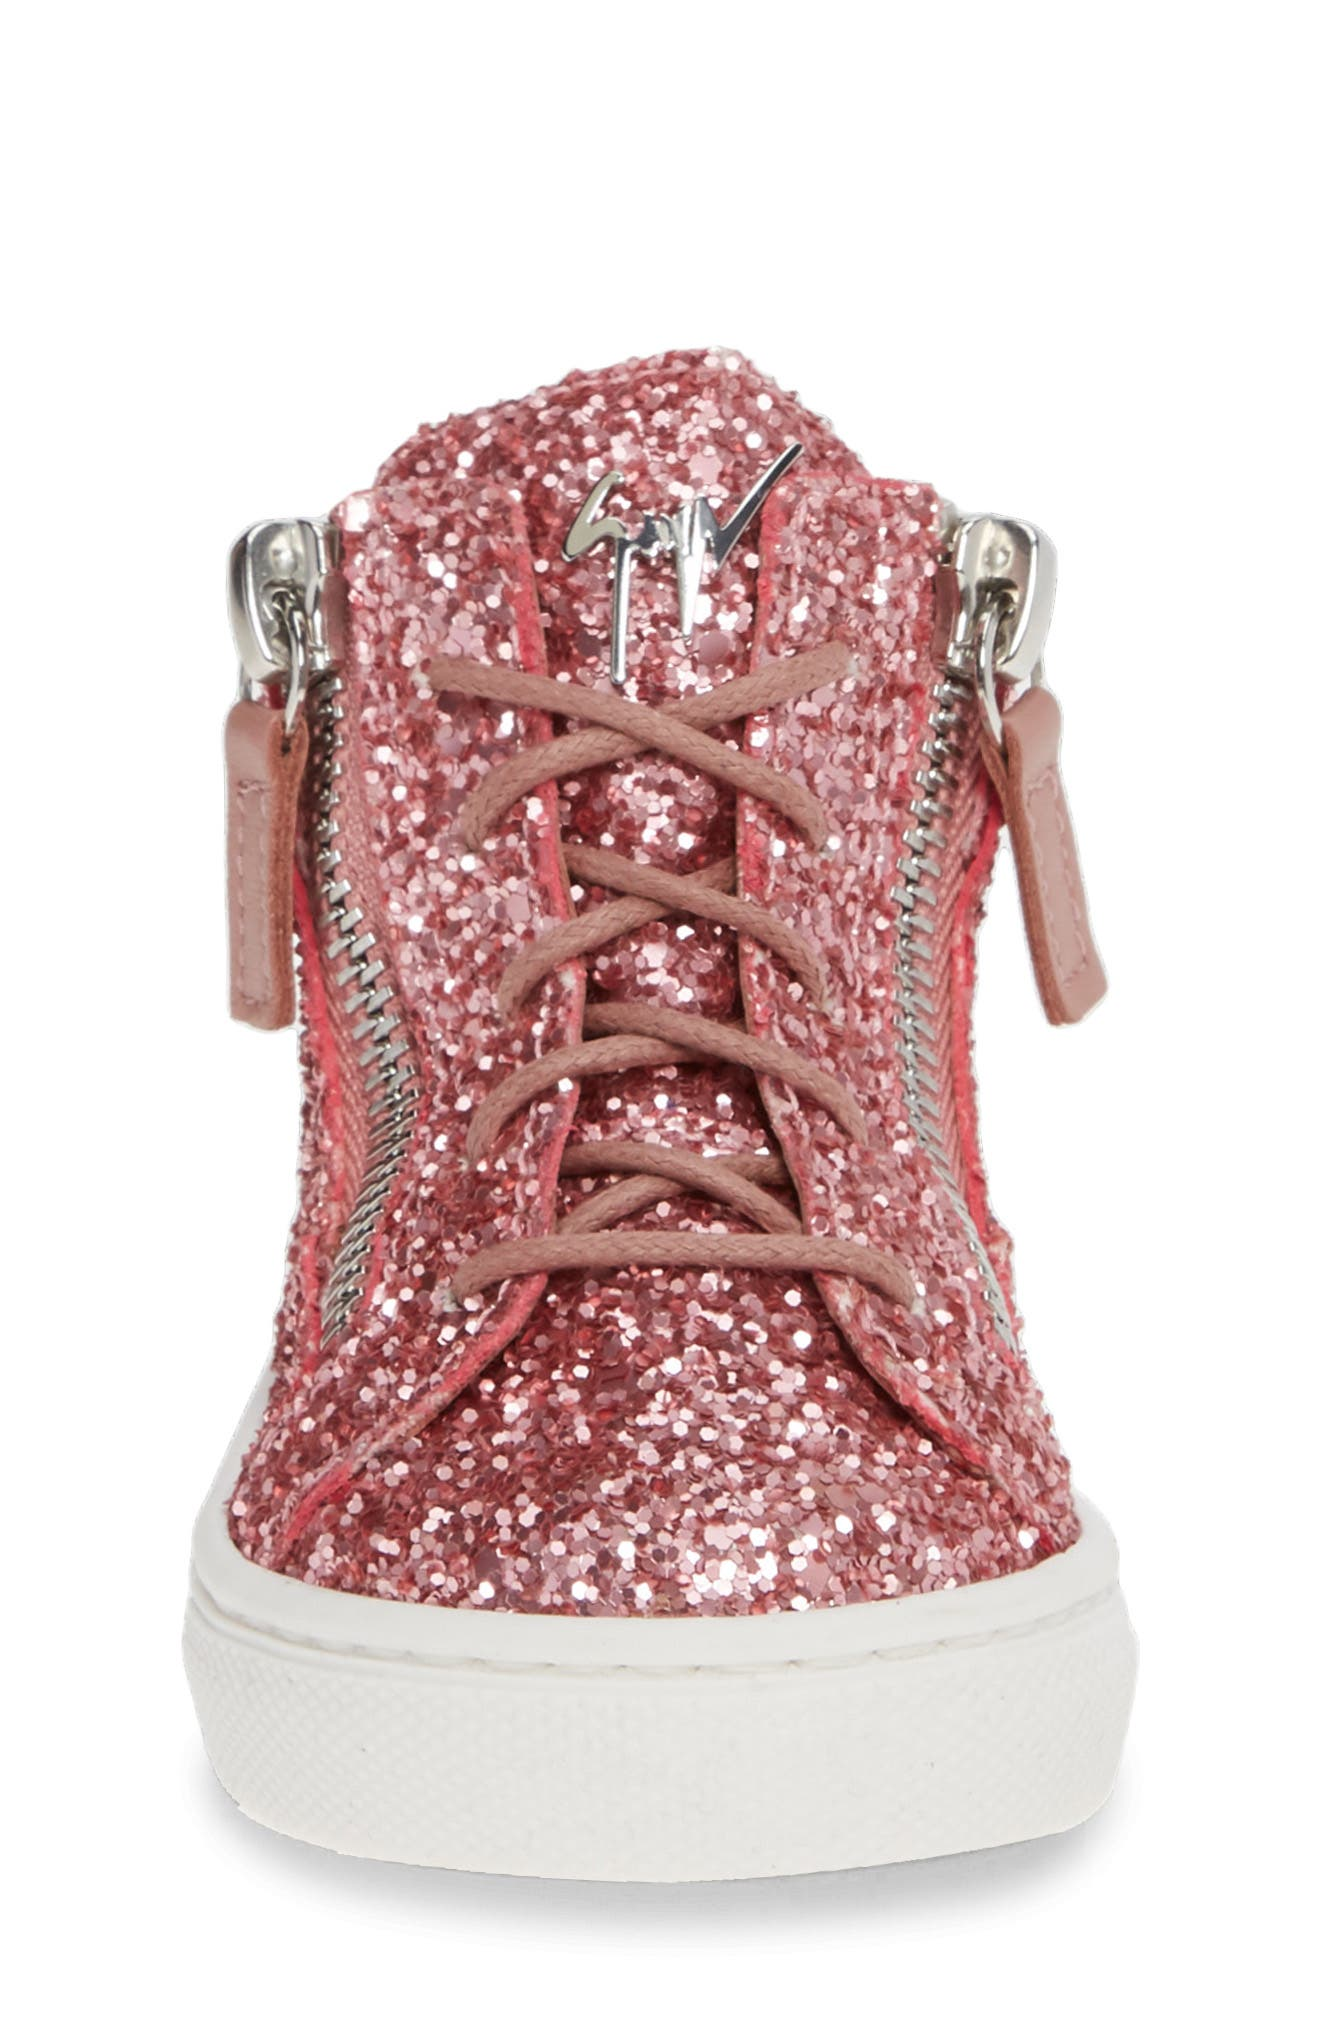 GIUSEPPE ZANOTTI, Natalie High Top Sneaker, Alternate thumbnail 4, color, LIPGLOSS